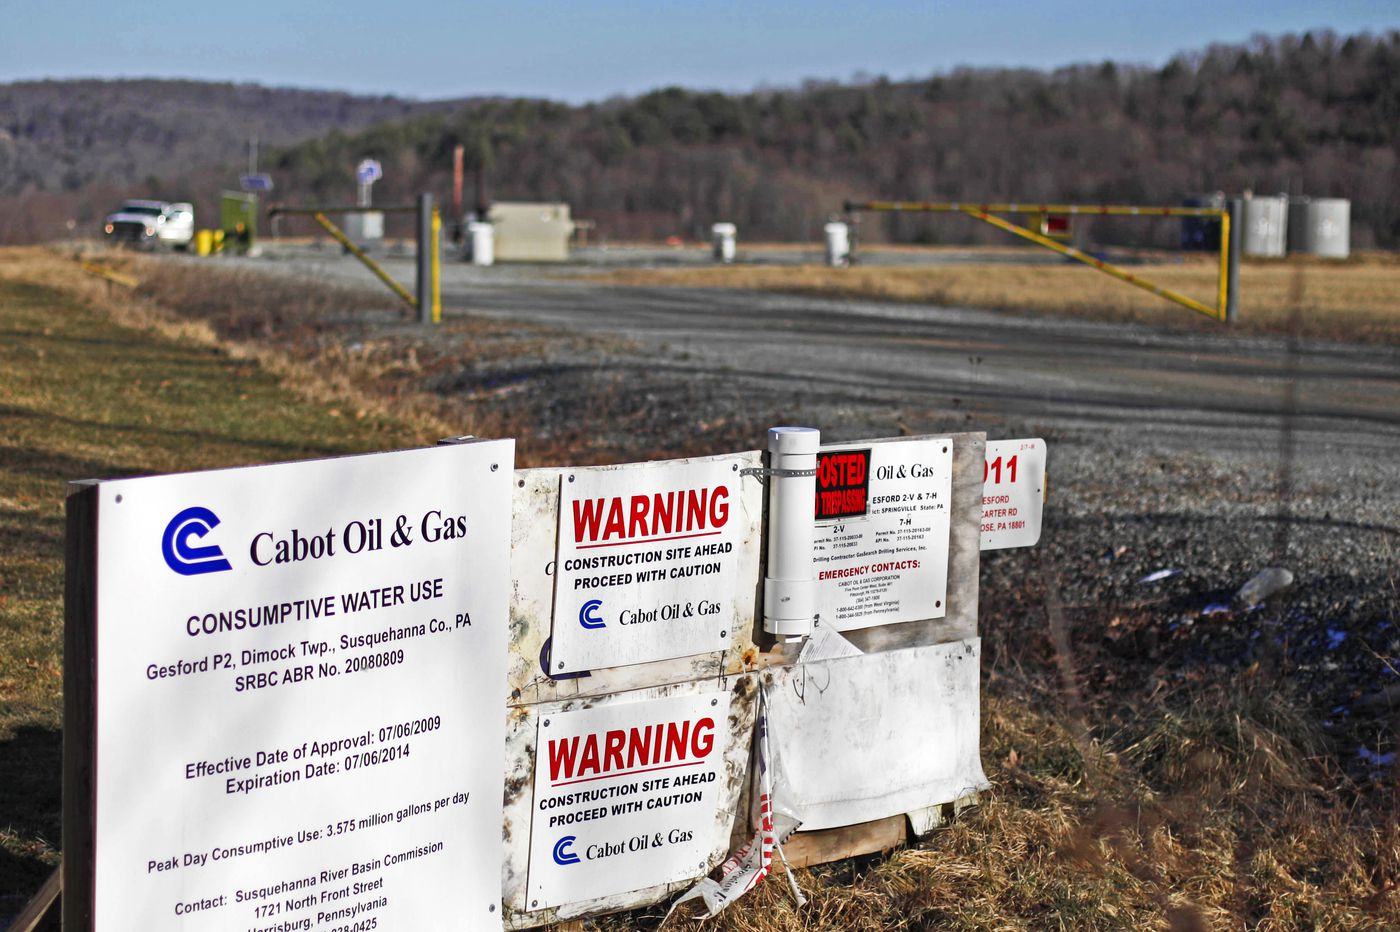 Grand jury report on fracking will not help Pennsylvanians   Opinion